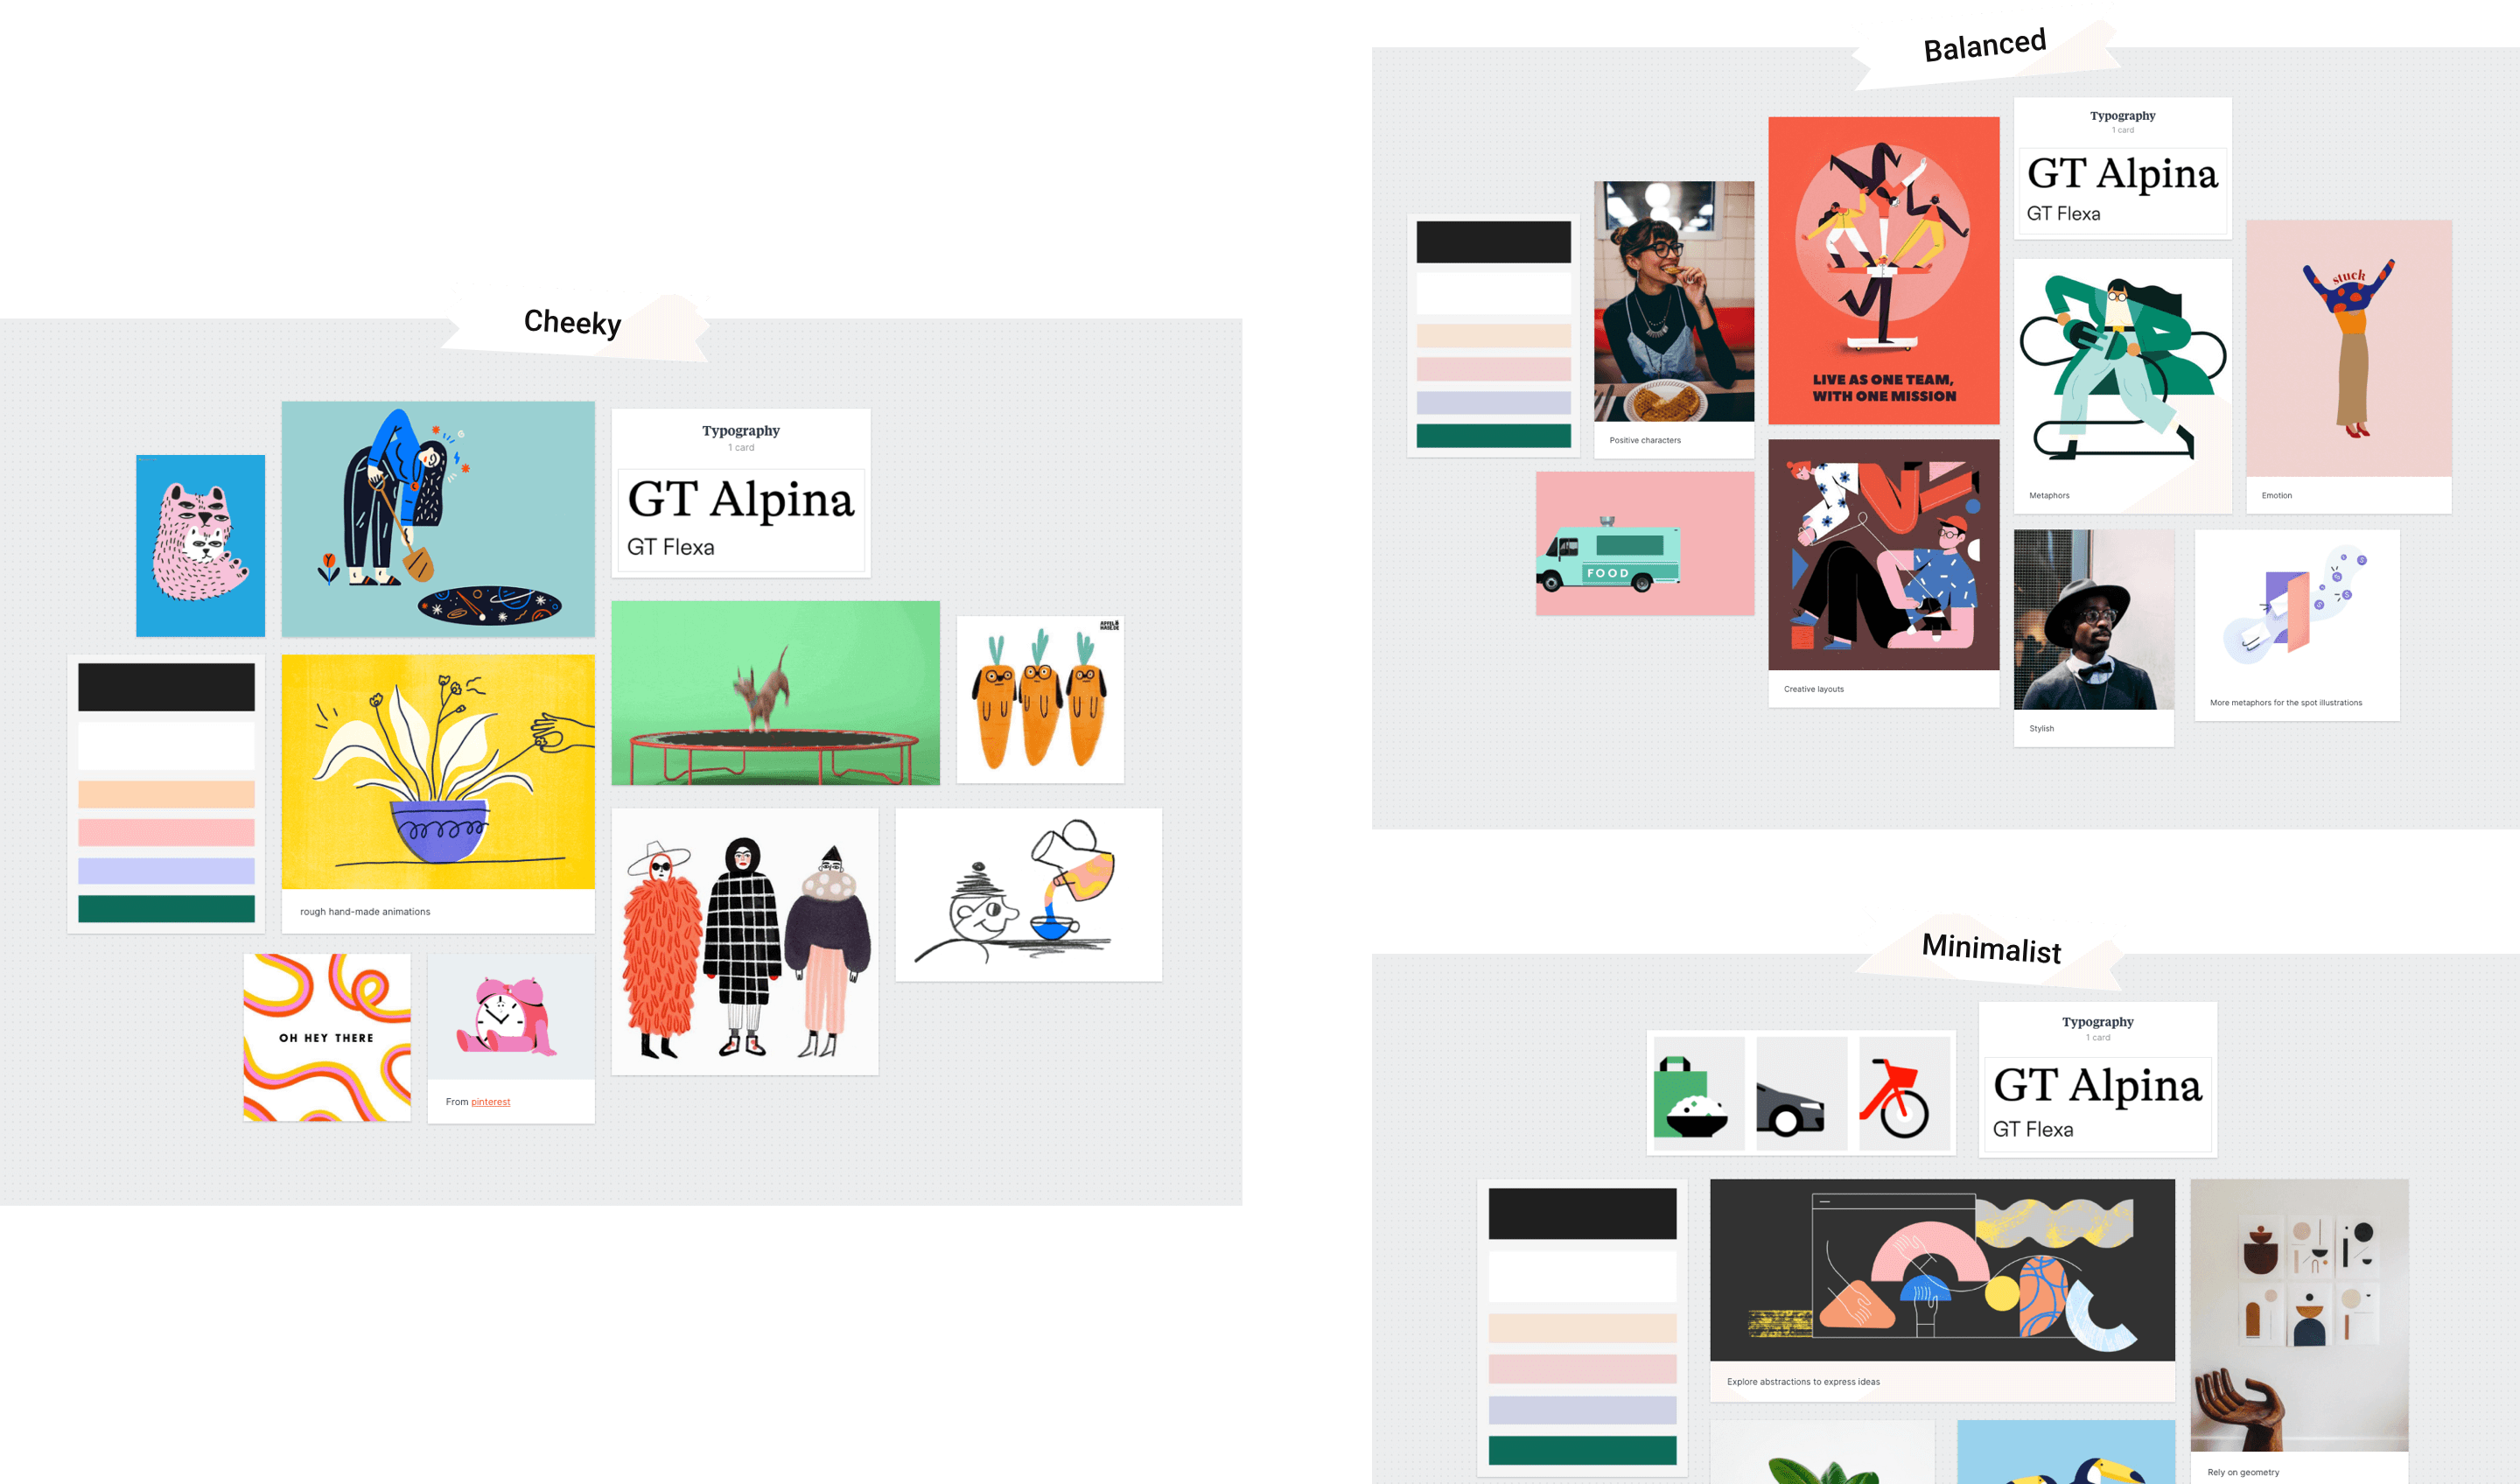 empower-mood-boards